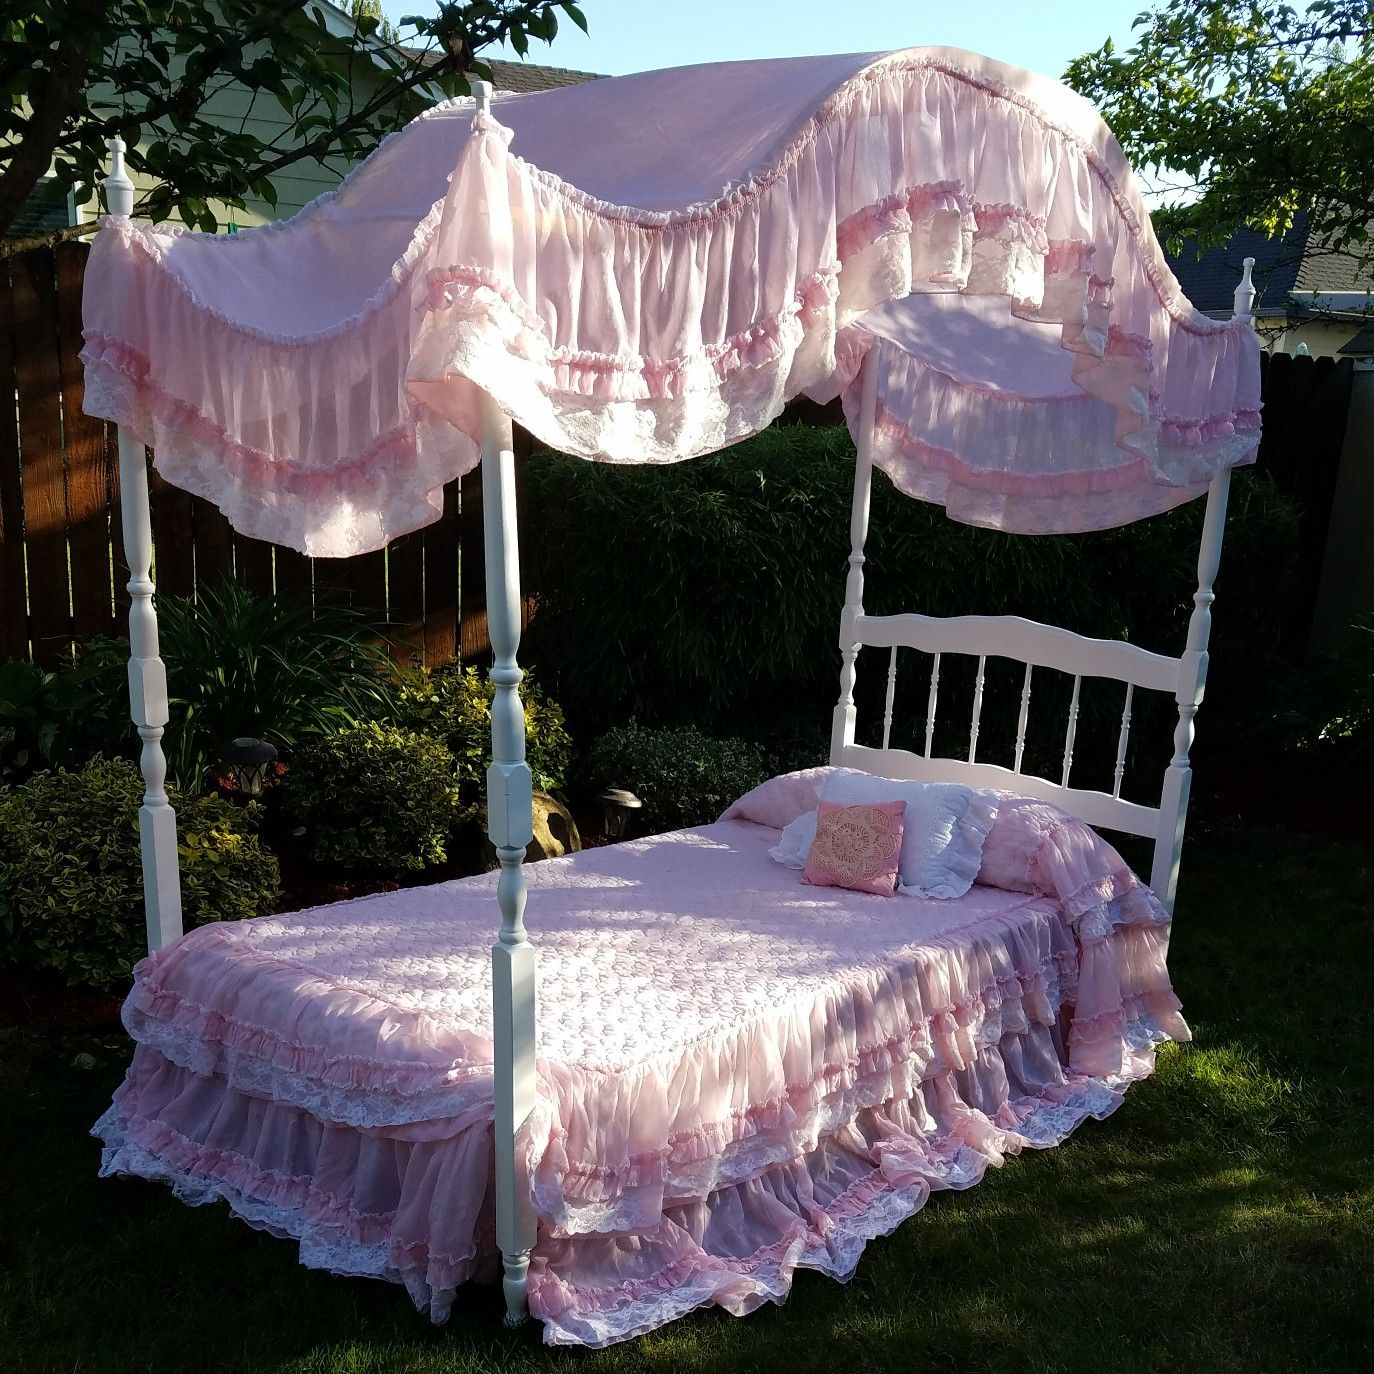 Sears Bonnet Bedroom Set Canopy Bed Canopy Bedroom Sets Canopy Bedroom Canopy Bed